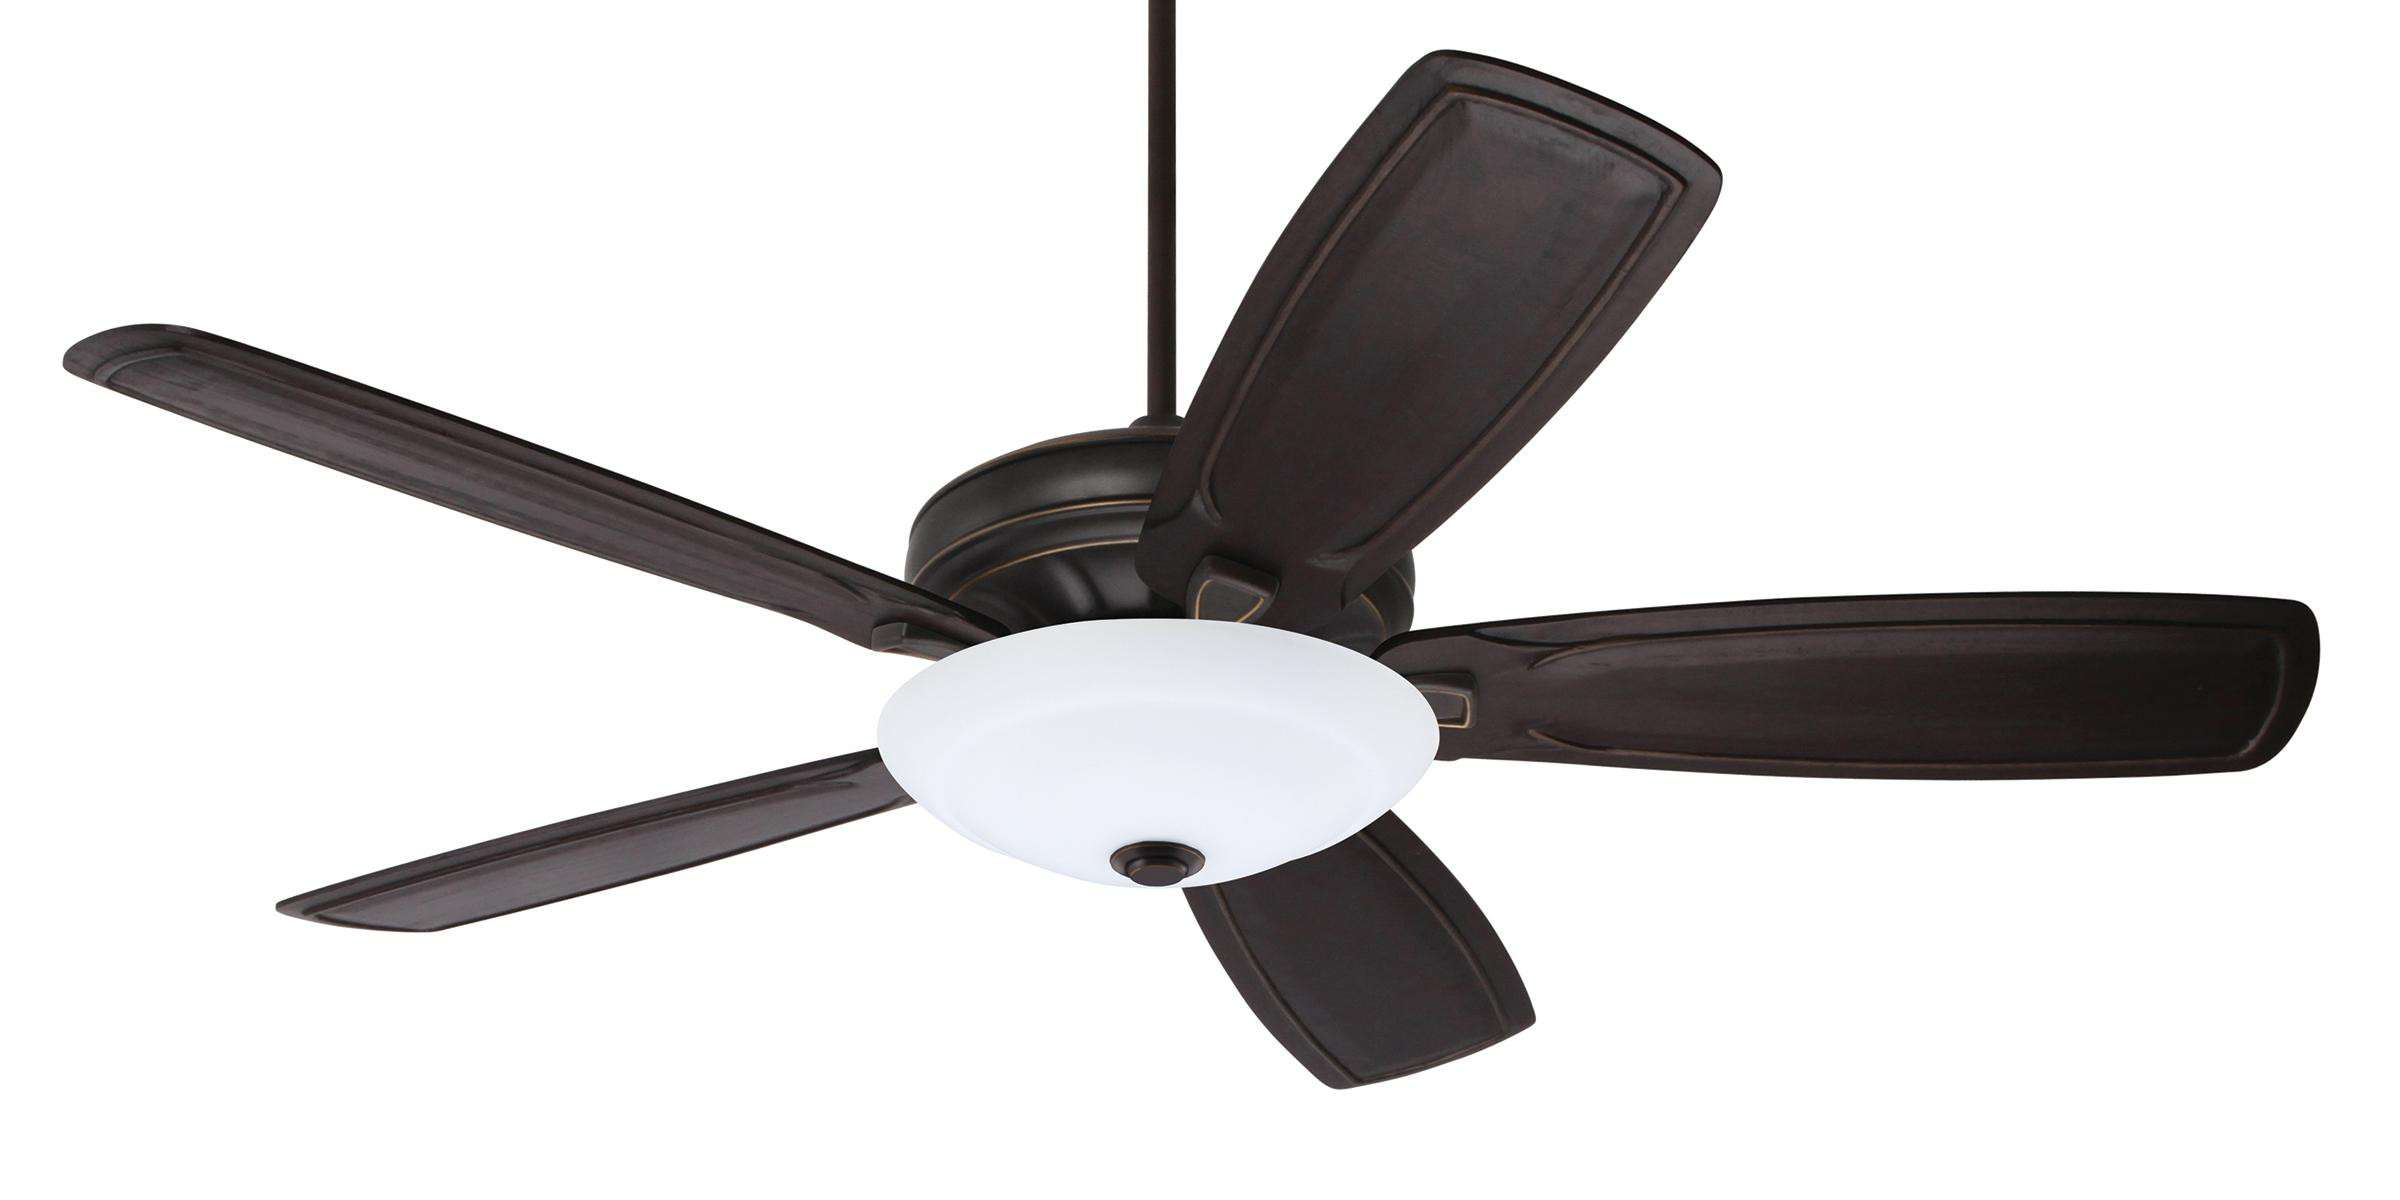 Emerson Carrera Grande Eco 60 (DC Motor) Ceiling Fan Model CF788GES-B90VBL-LK180GES in Golden Espresso